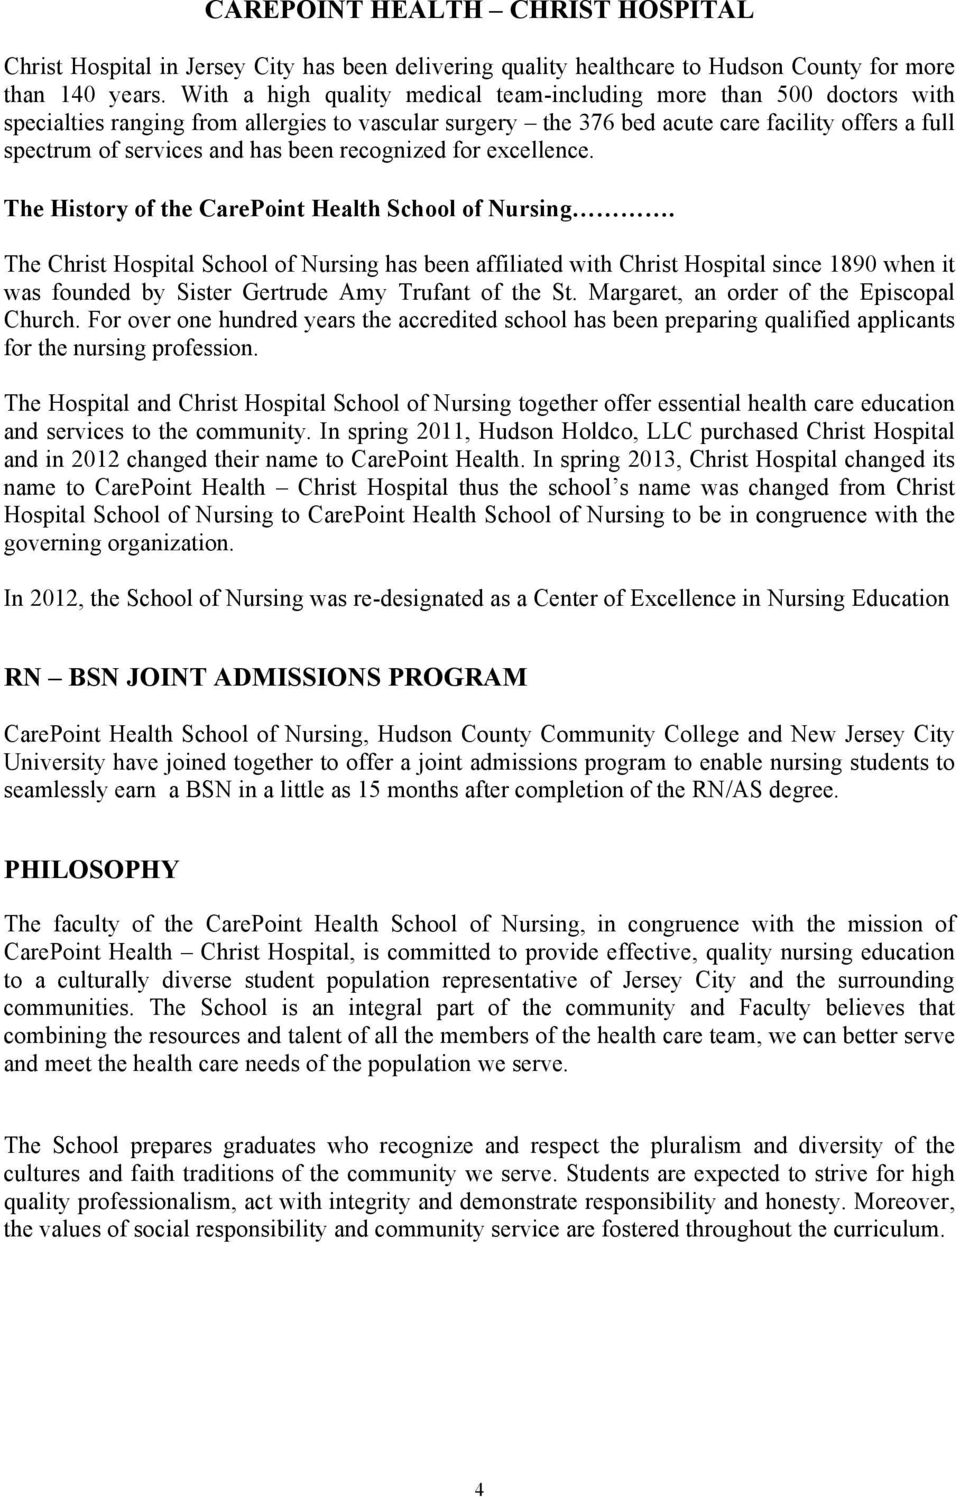 been recognized for excellence. The History of the CarePoint Health School of Nursing.